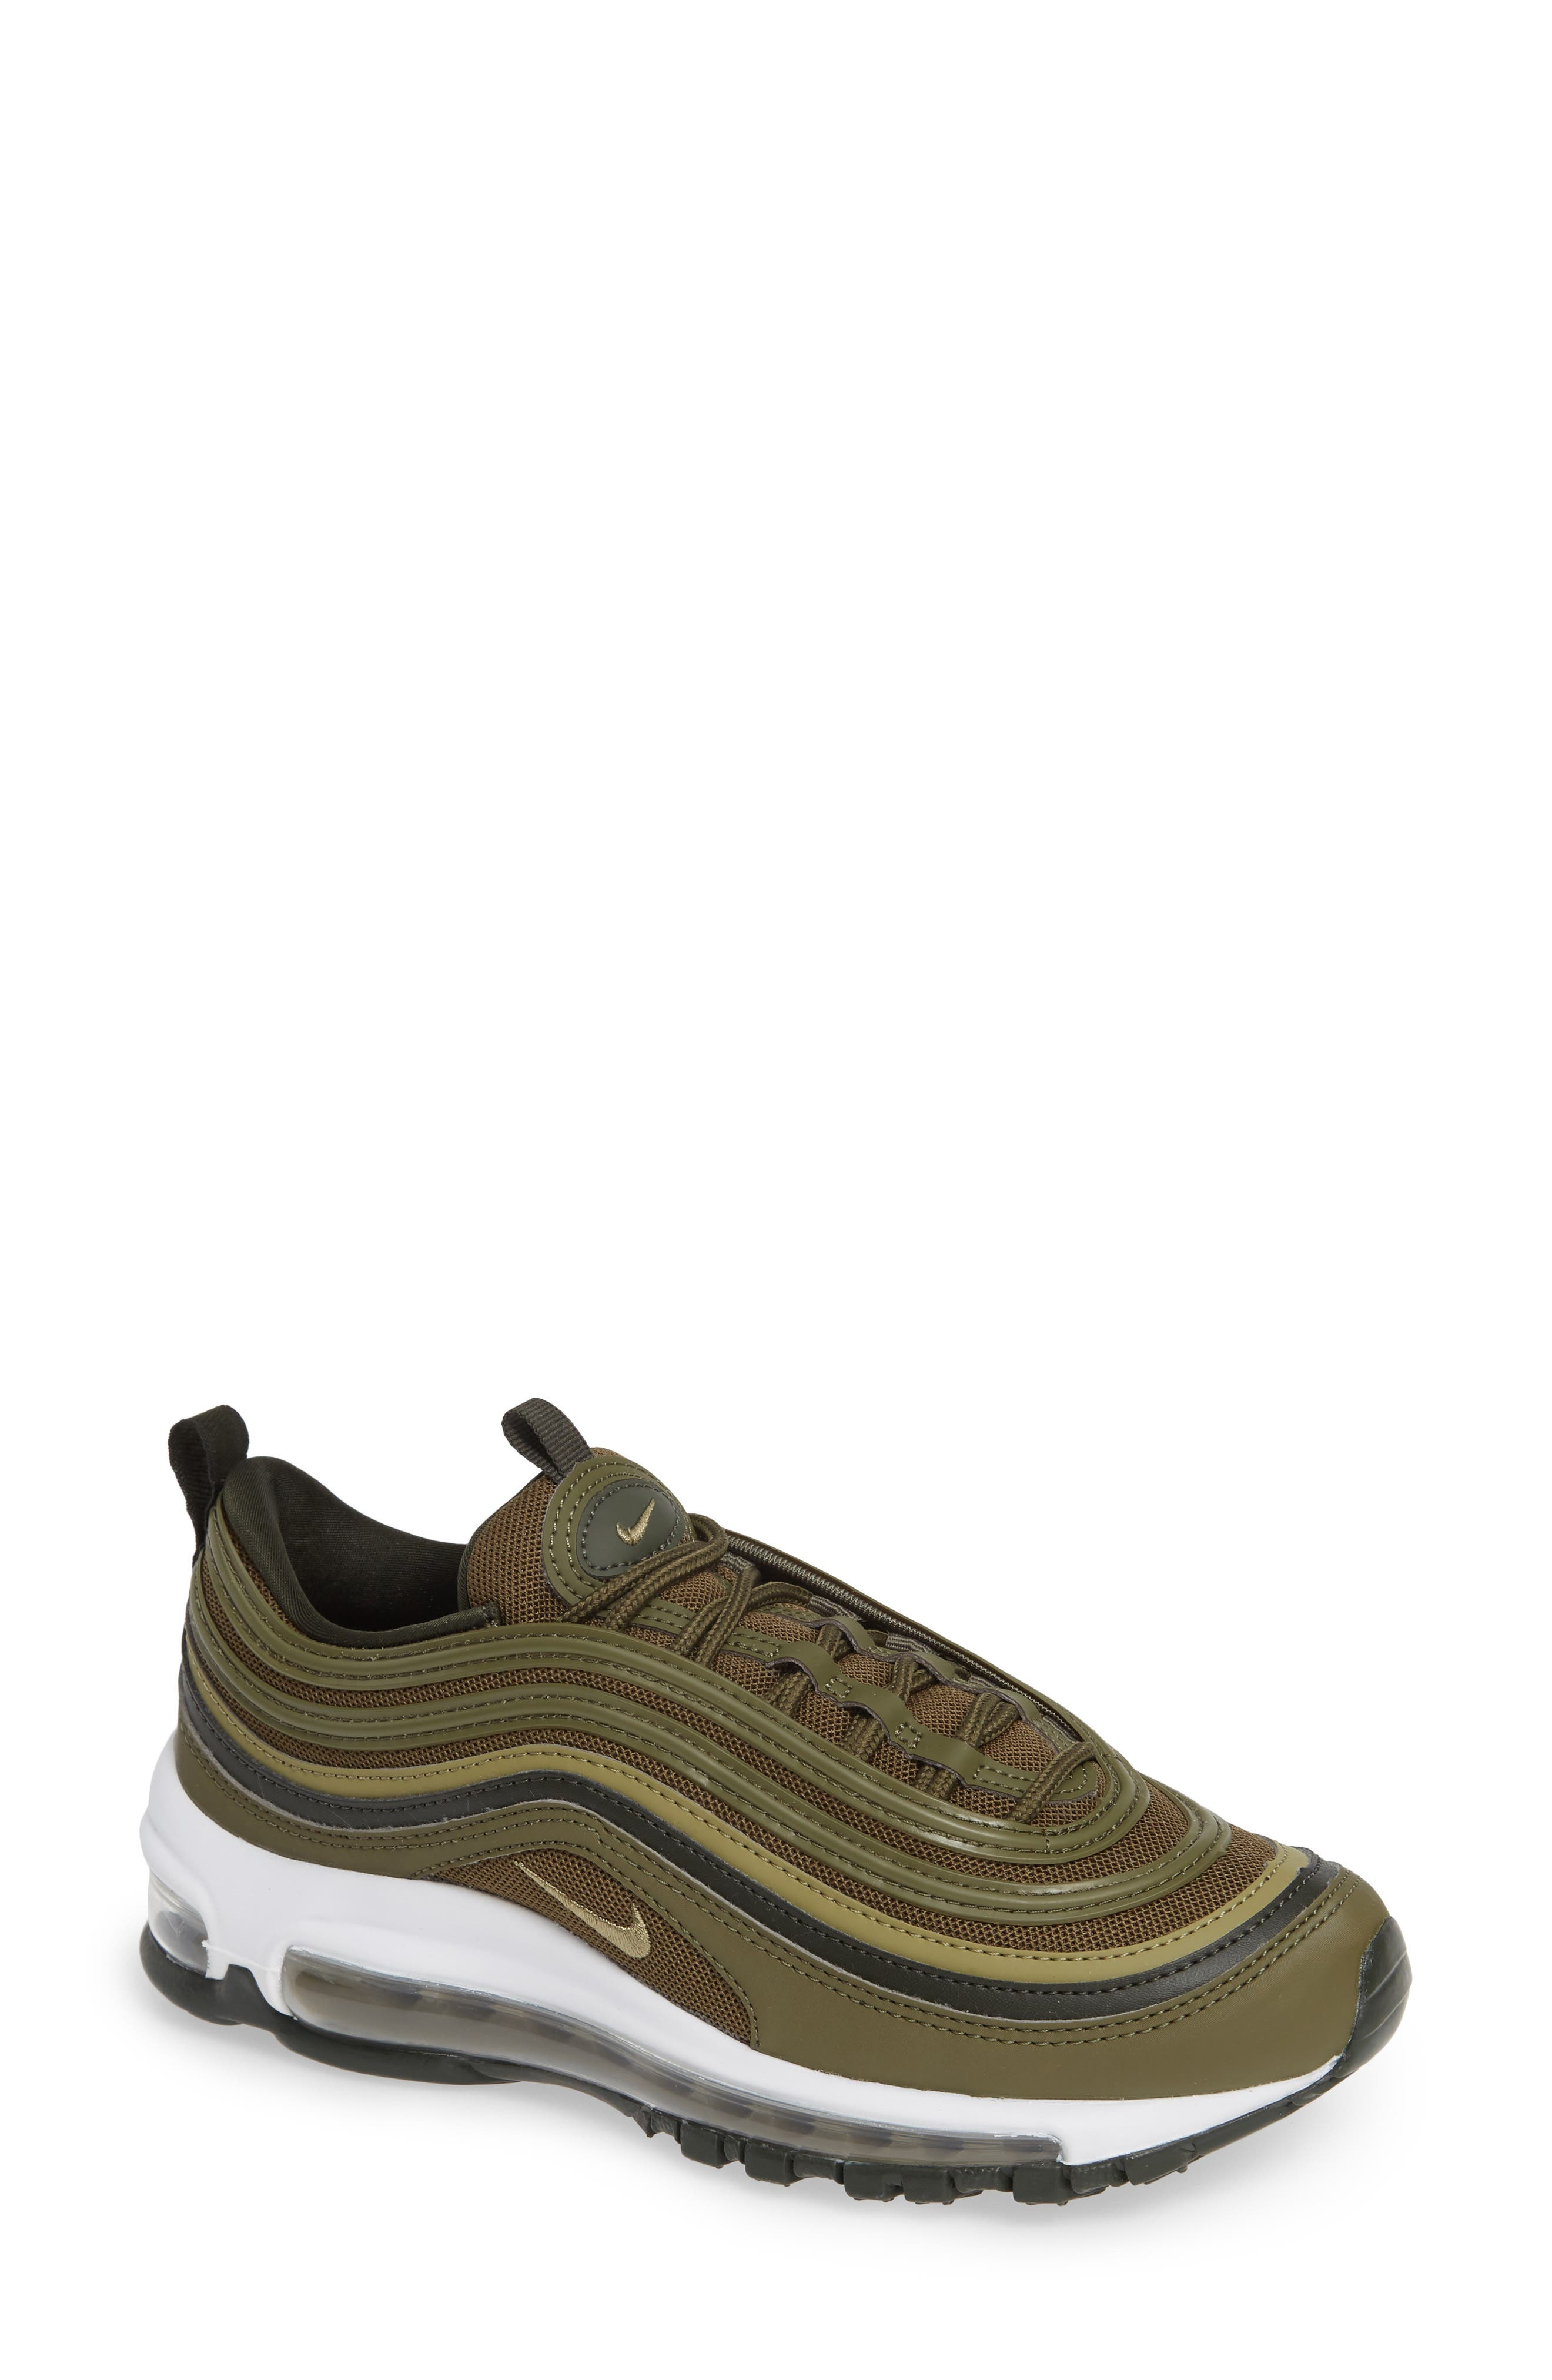 220a387afb53e1 ... coupon code for nike air max 97 sneaker women 28284 fd190